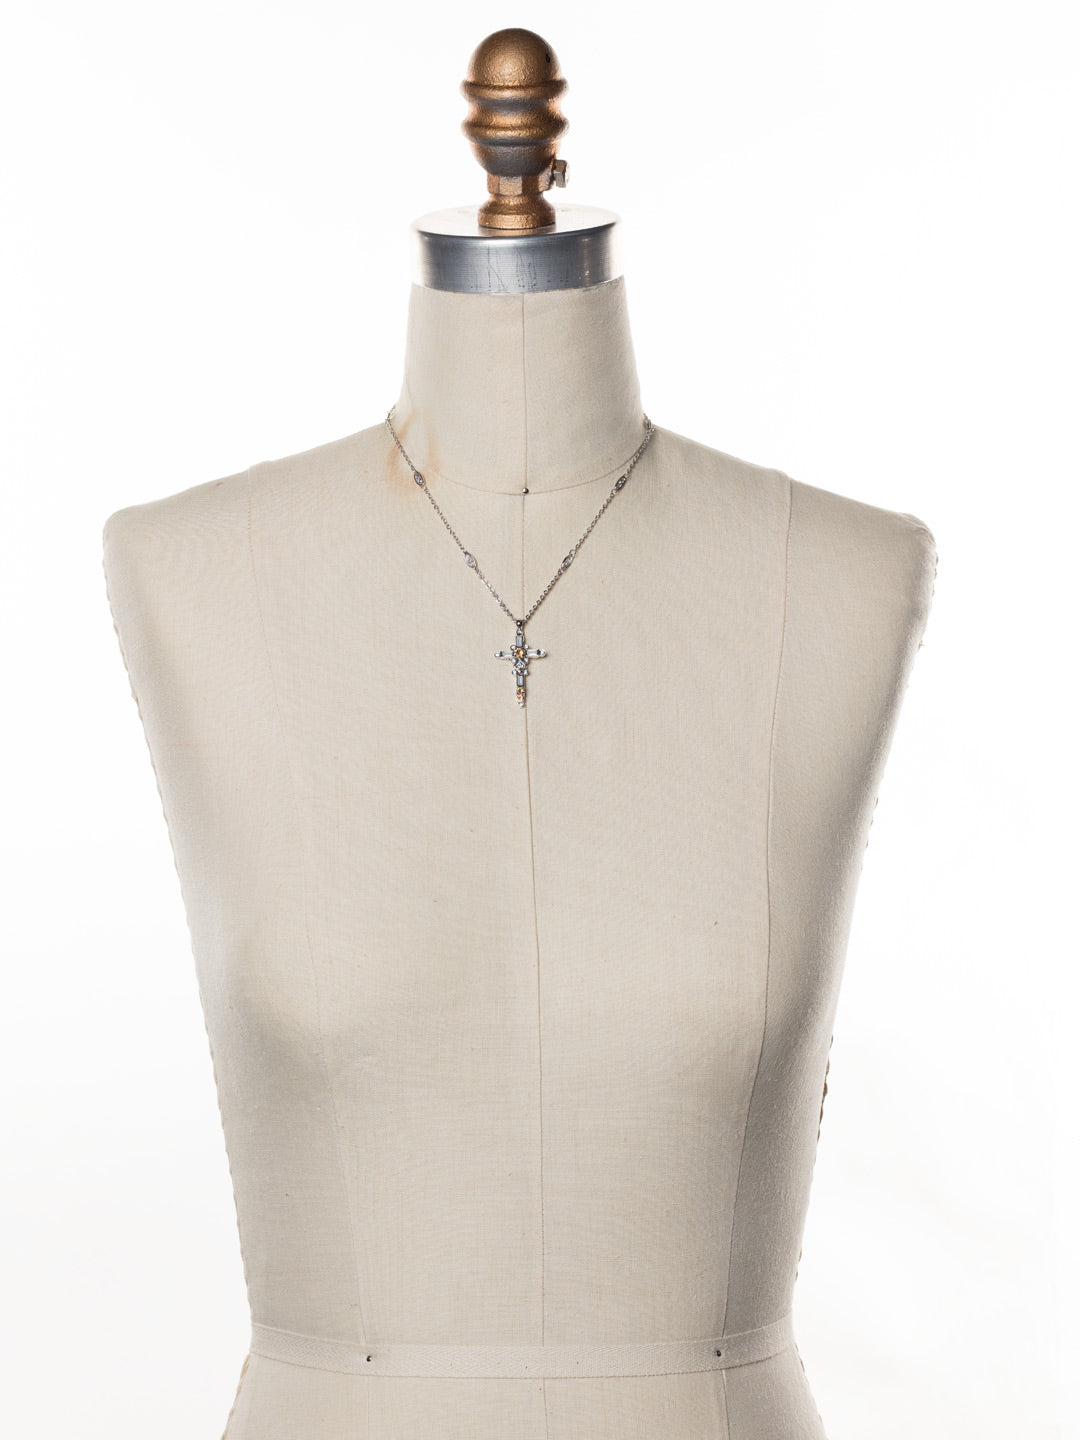 Delicate Sliding Cross Pendant Necklace - NDQ54RHNTB